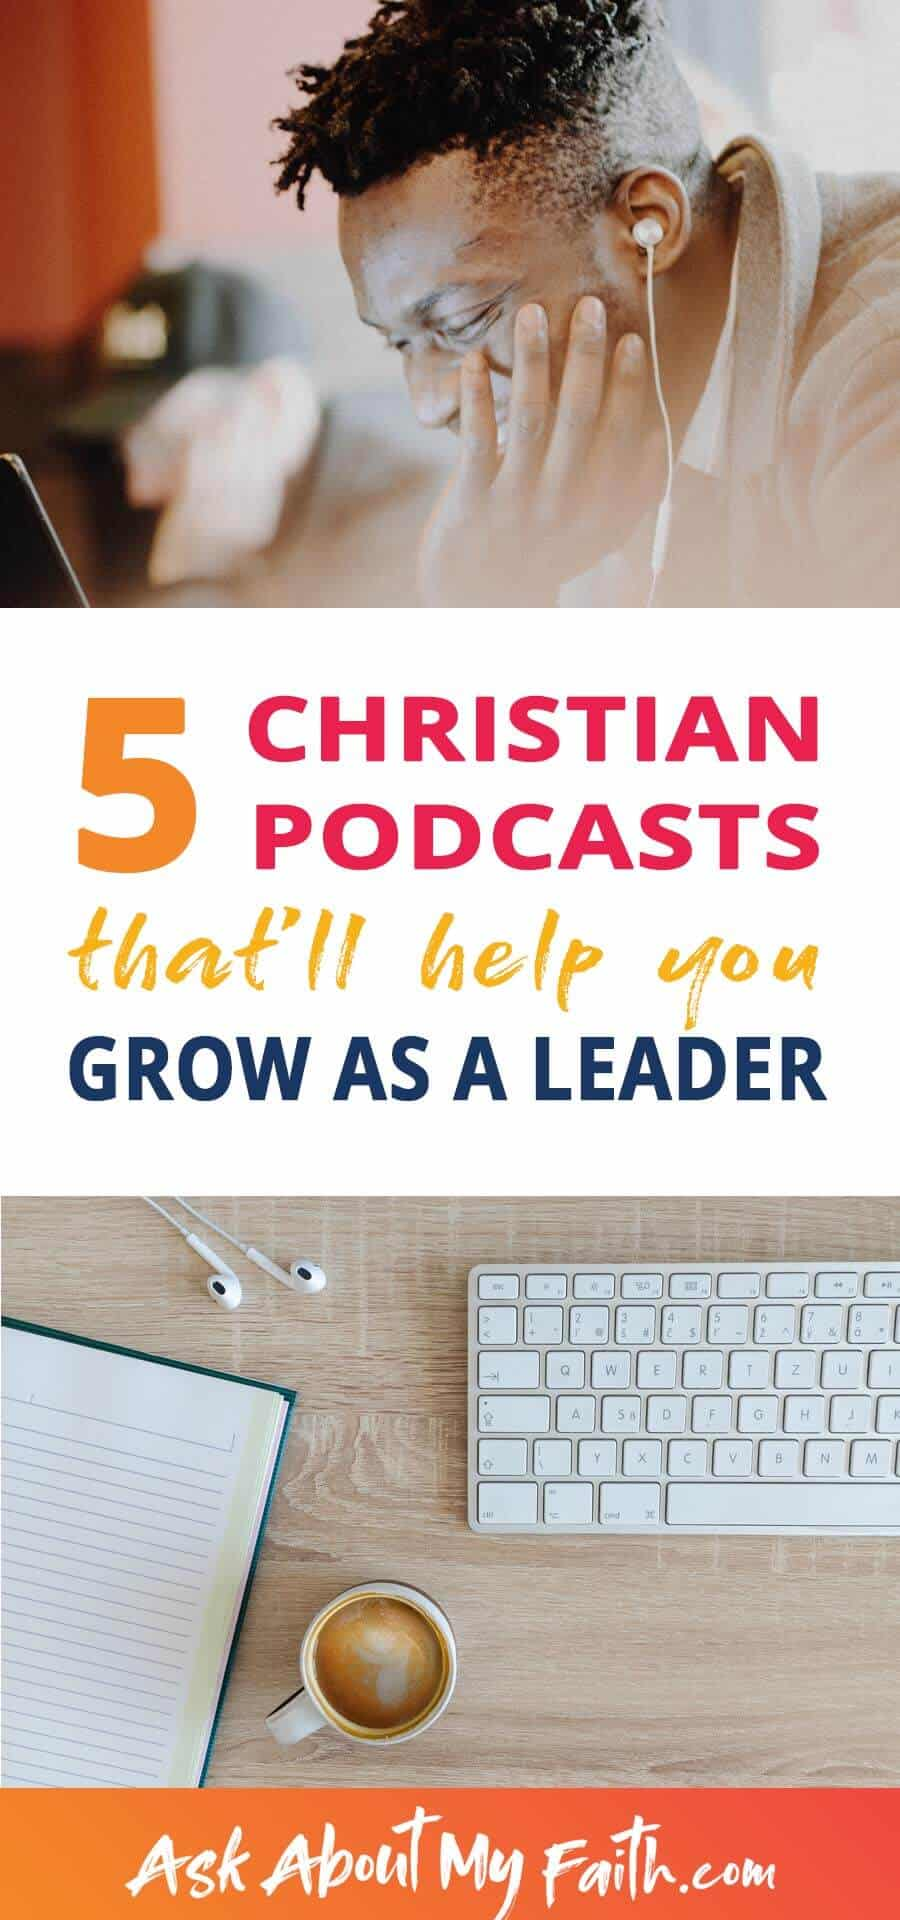 5 Christian Podcasts That'll Help You Grow As A Leader | Christianity | Faith Resources | Leadership